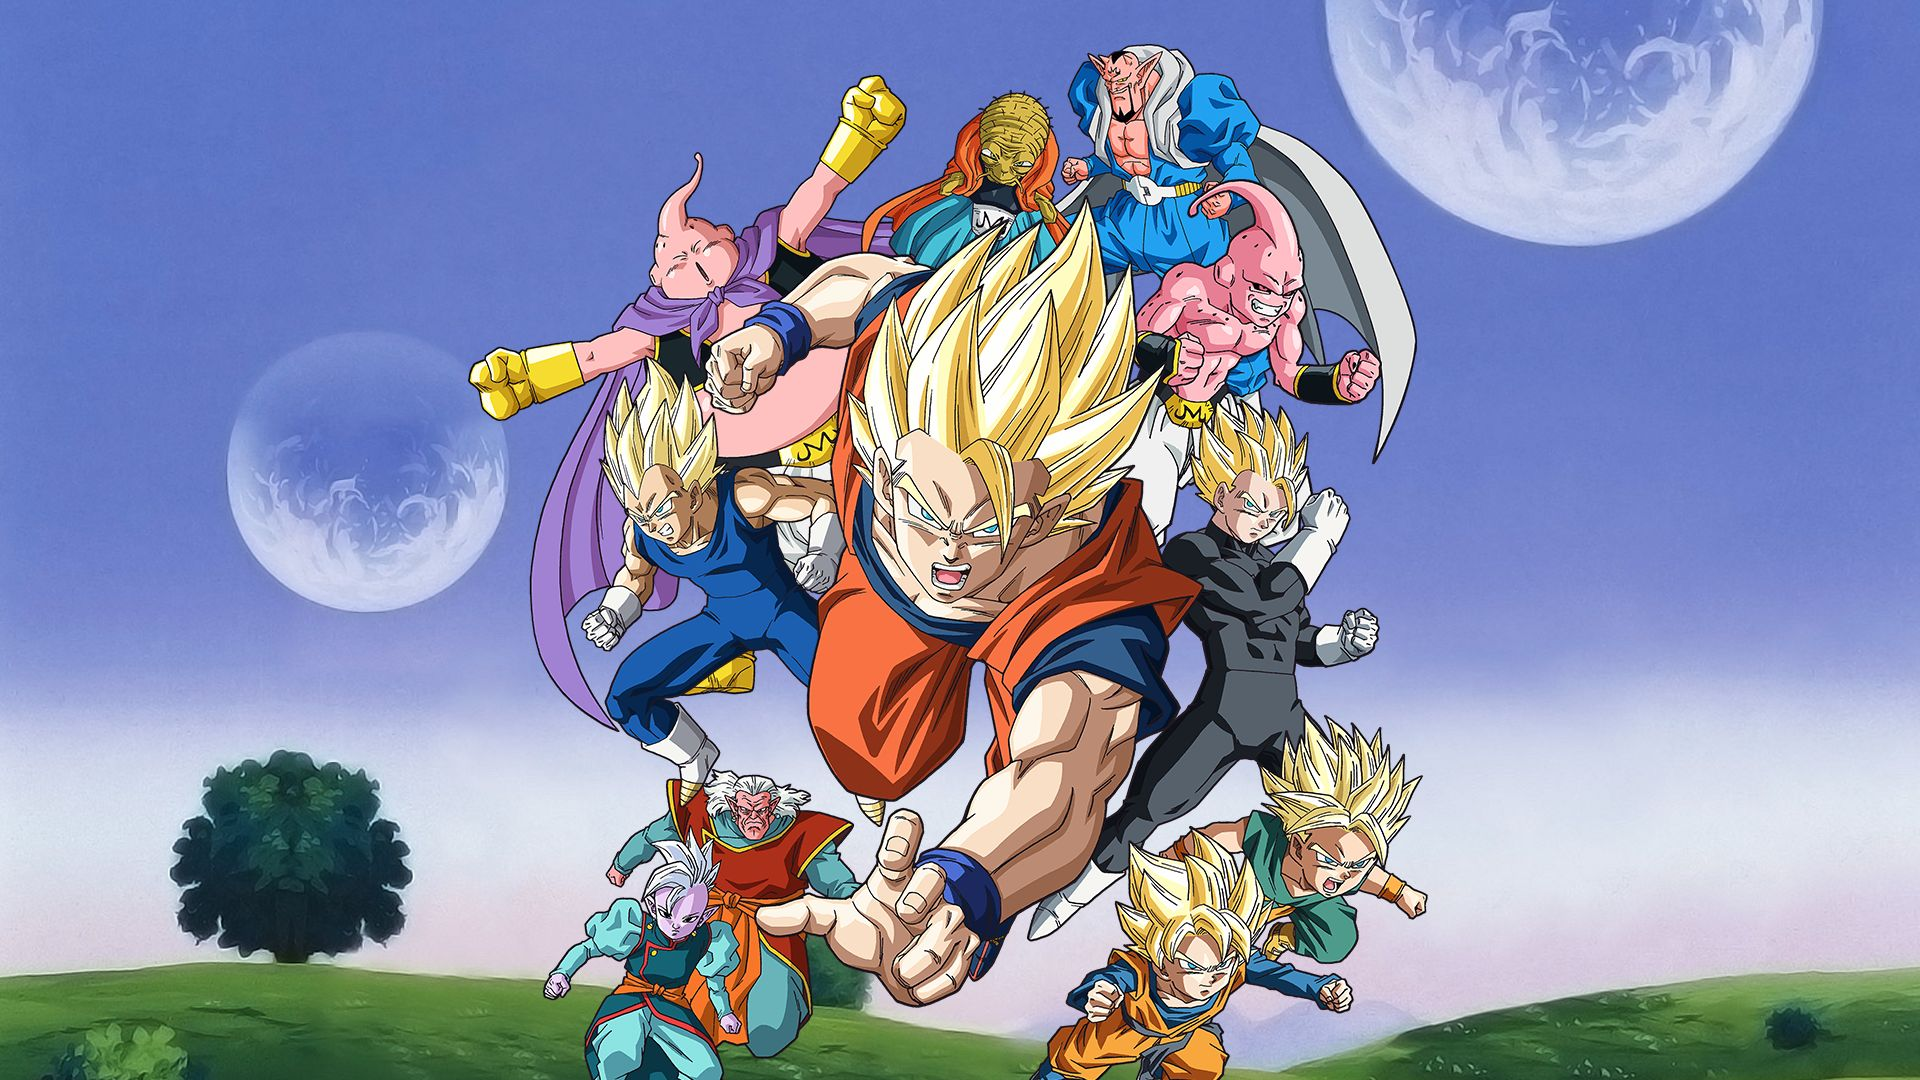 Free Download Top Hd Dragon Ball Z Kai Wallpaper Cartoons Hd